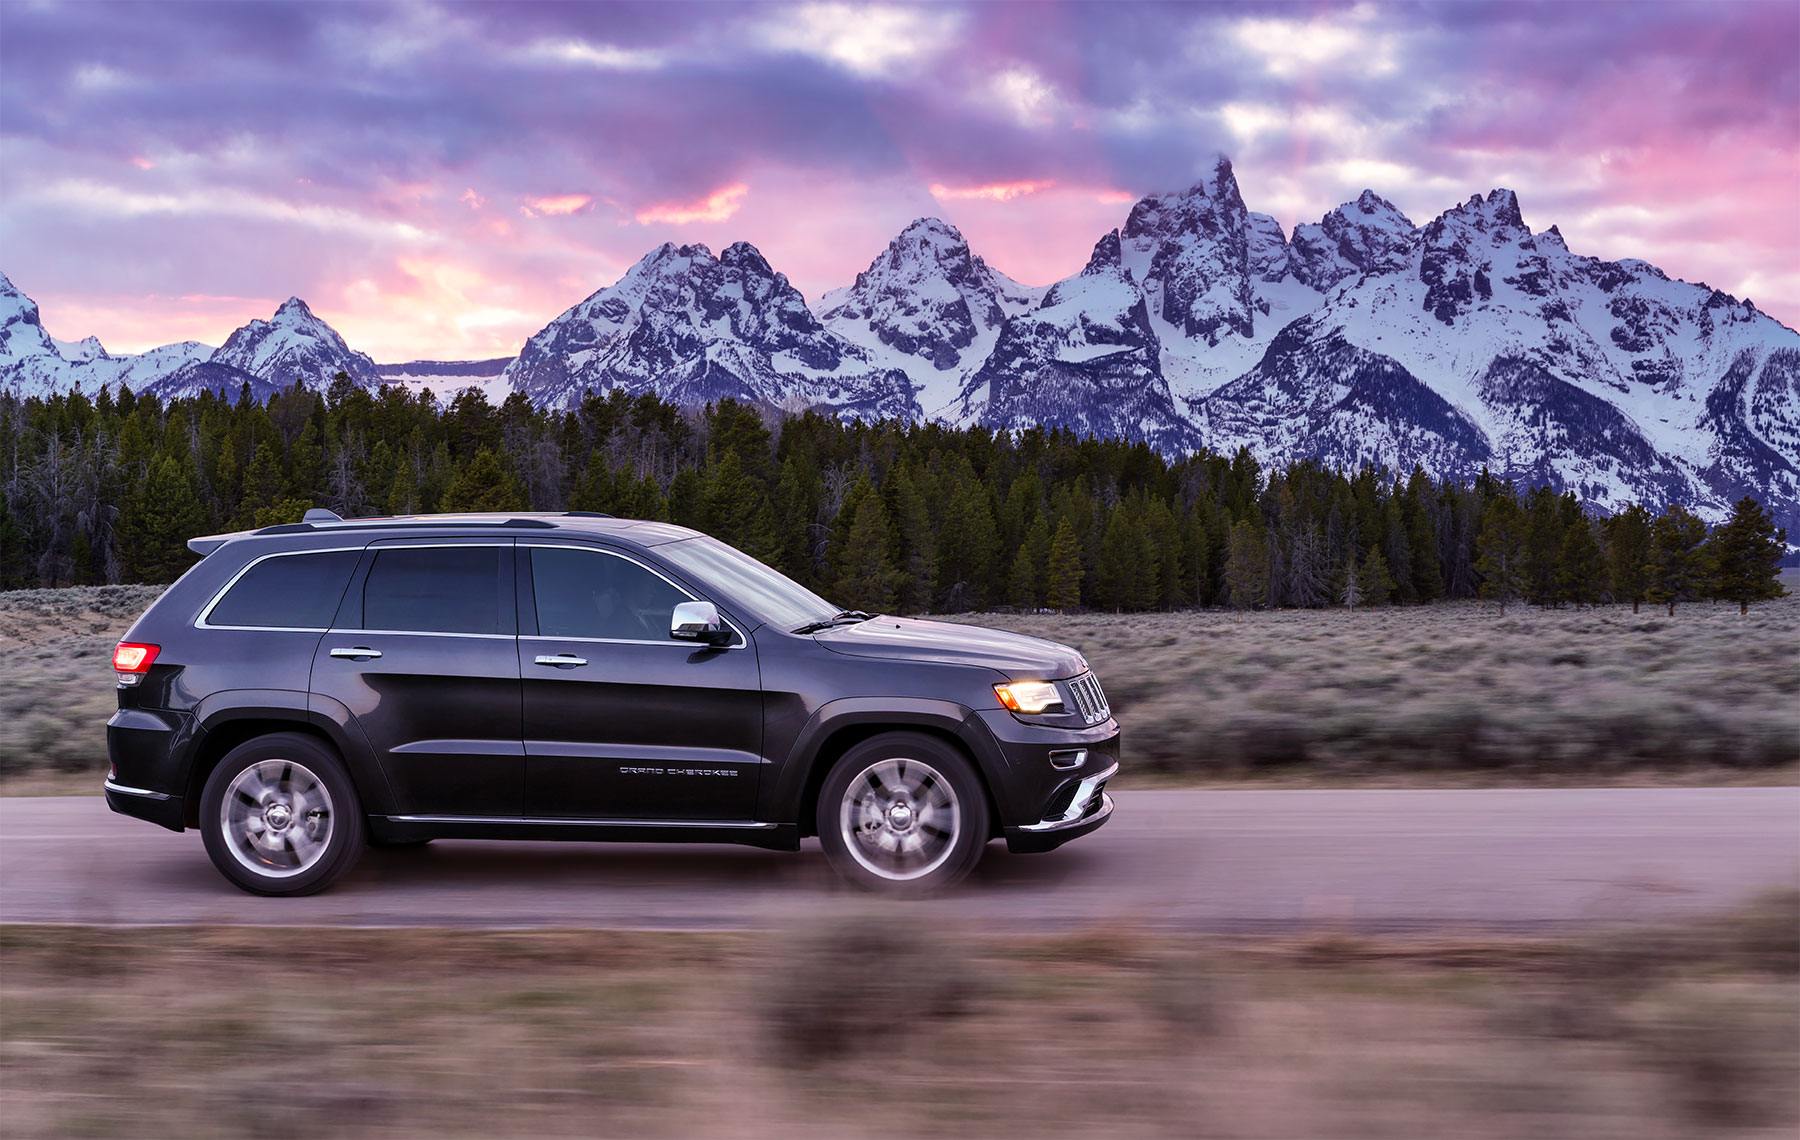 jeep_grand_cherokee_teton_sunset